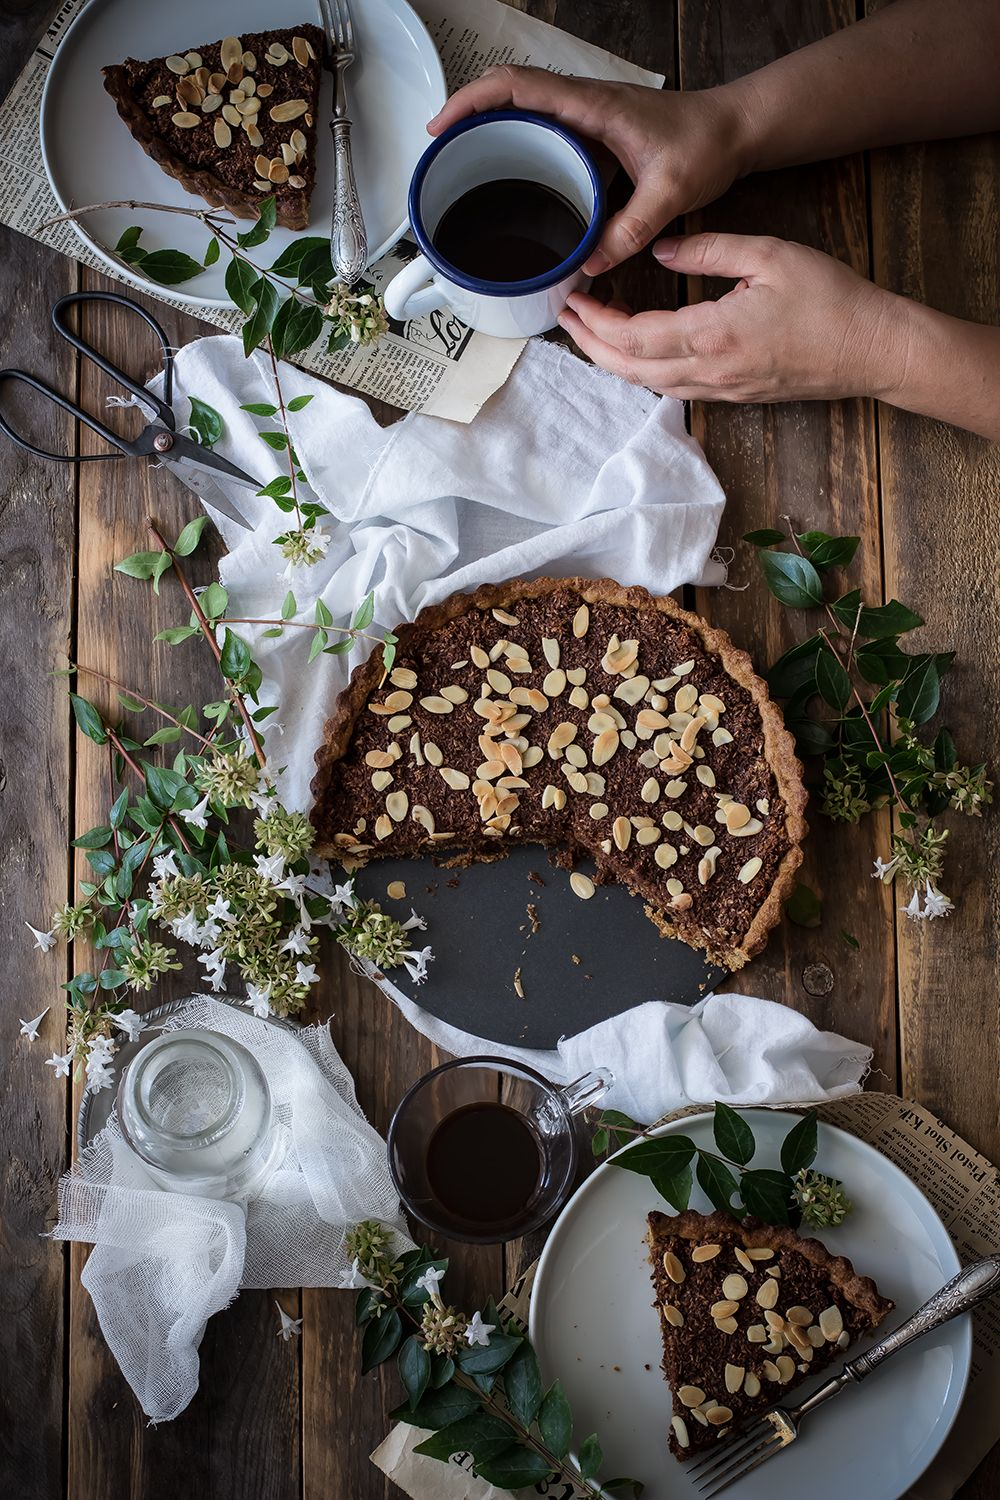 edf047f12a0d Chocolate coconut tart with almonds